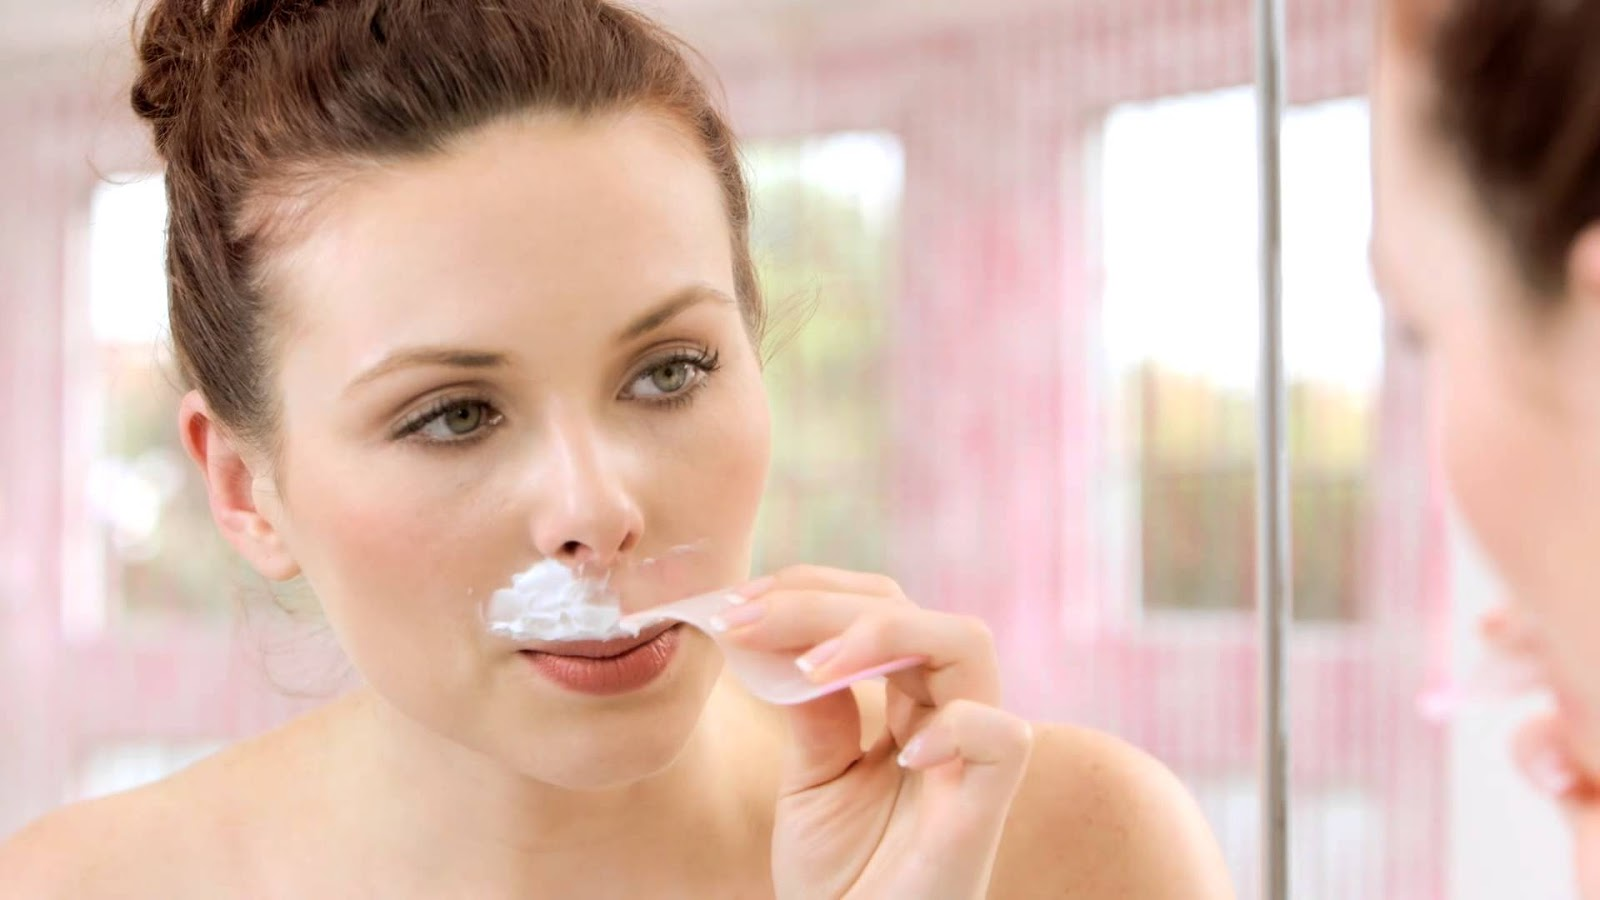 Female facial hair removal cream